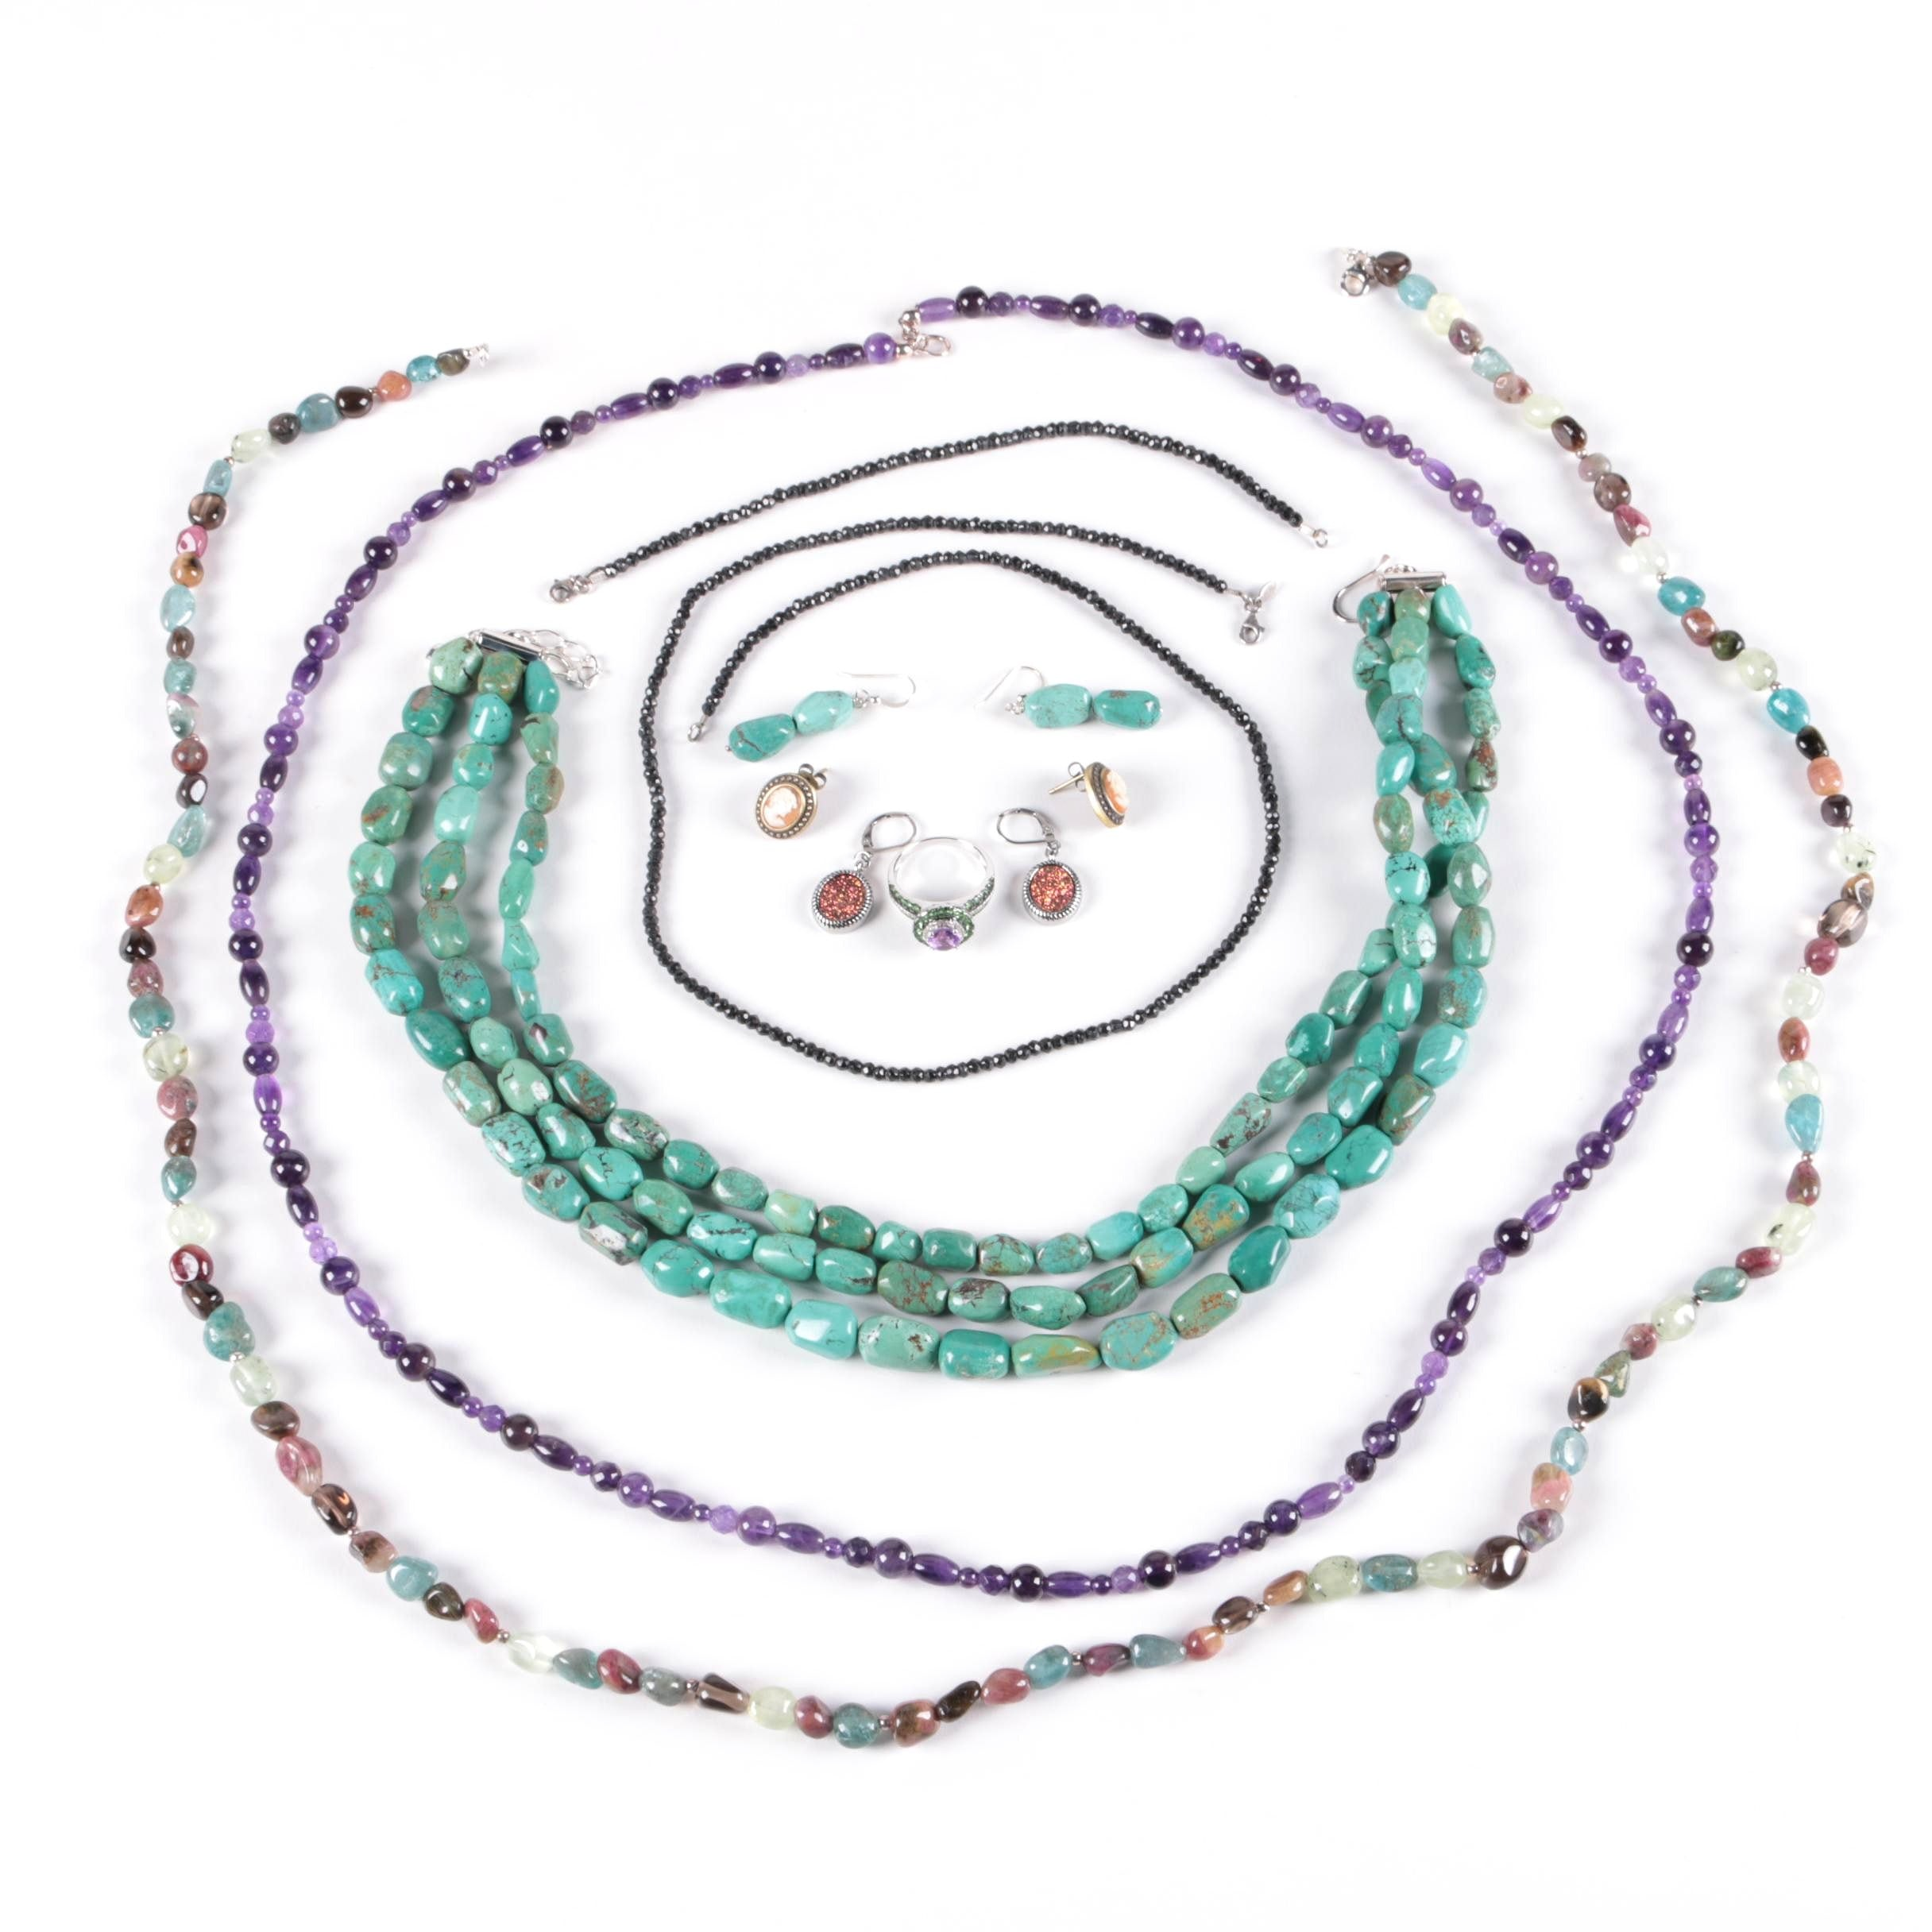 Sterling Silver Jewelry Featuring Turquoise